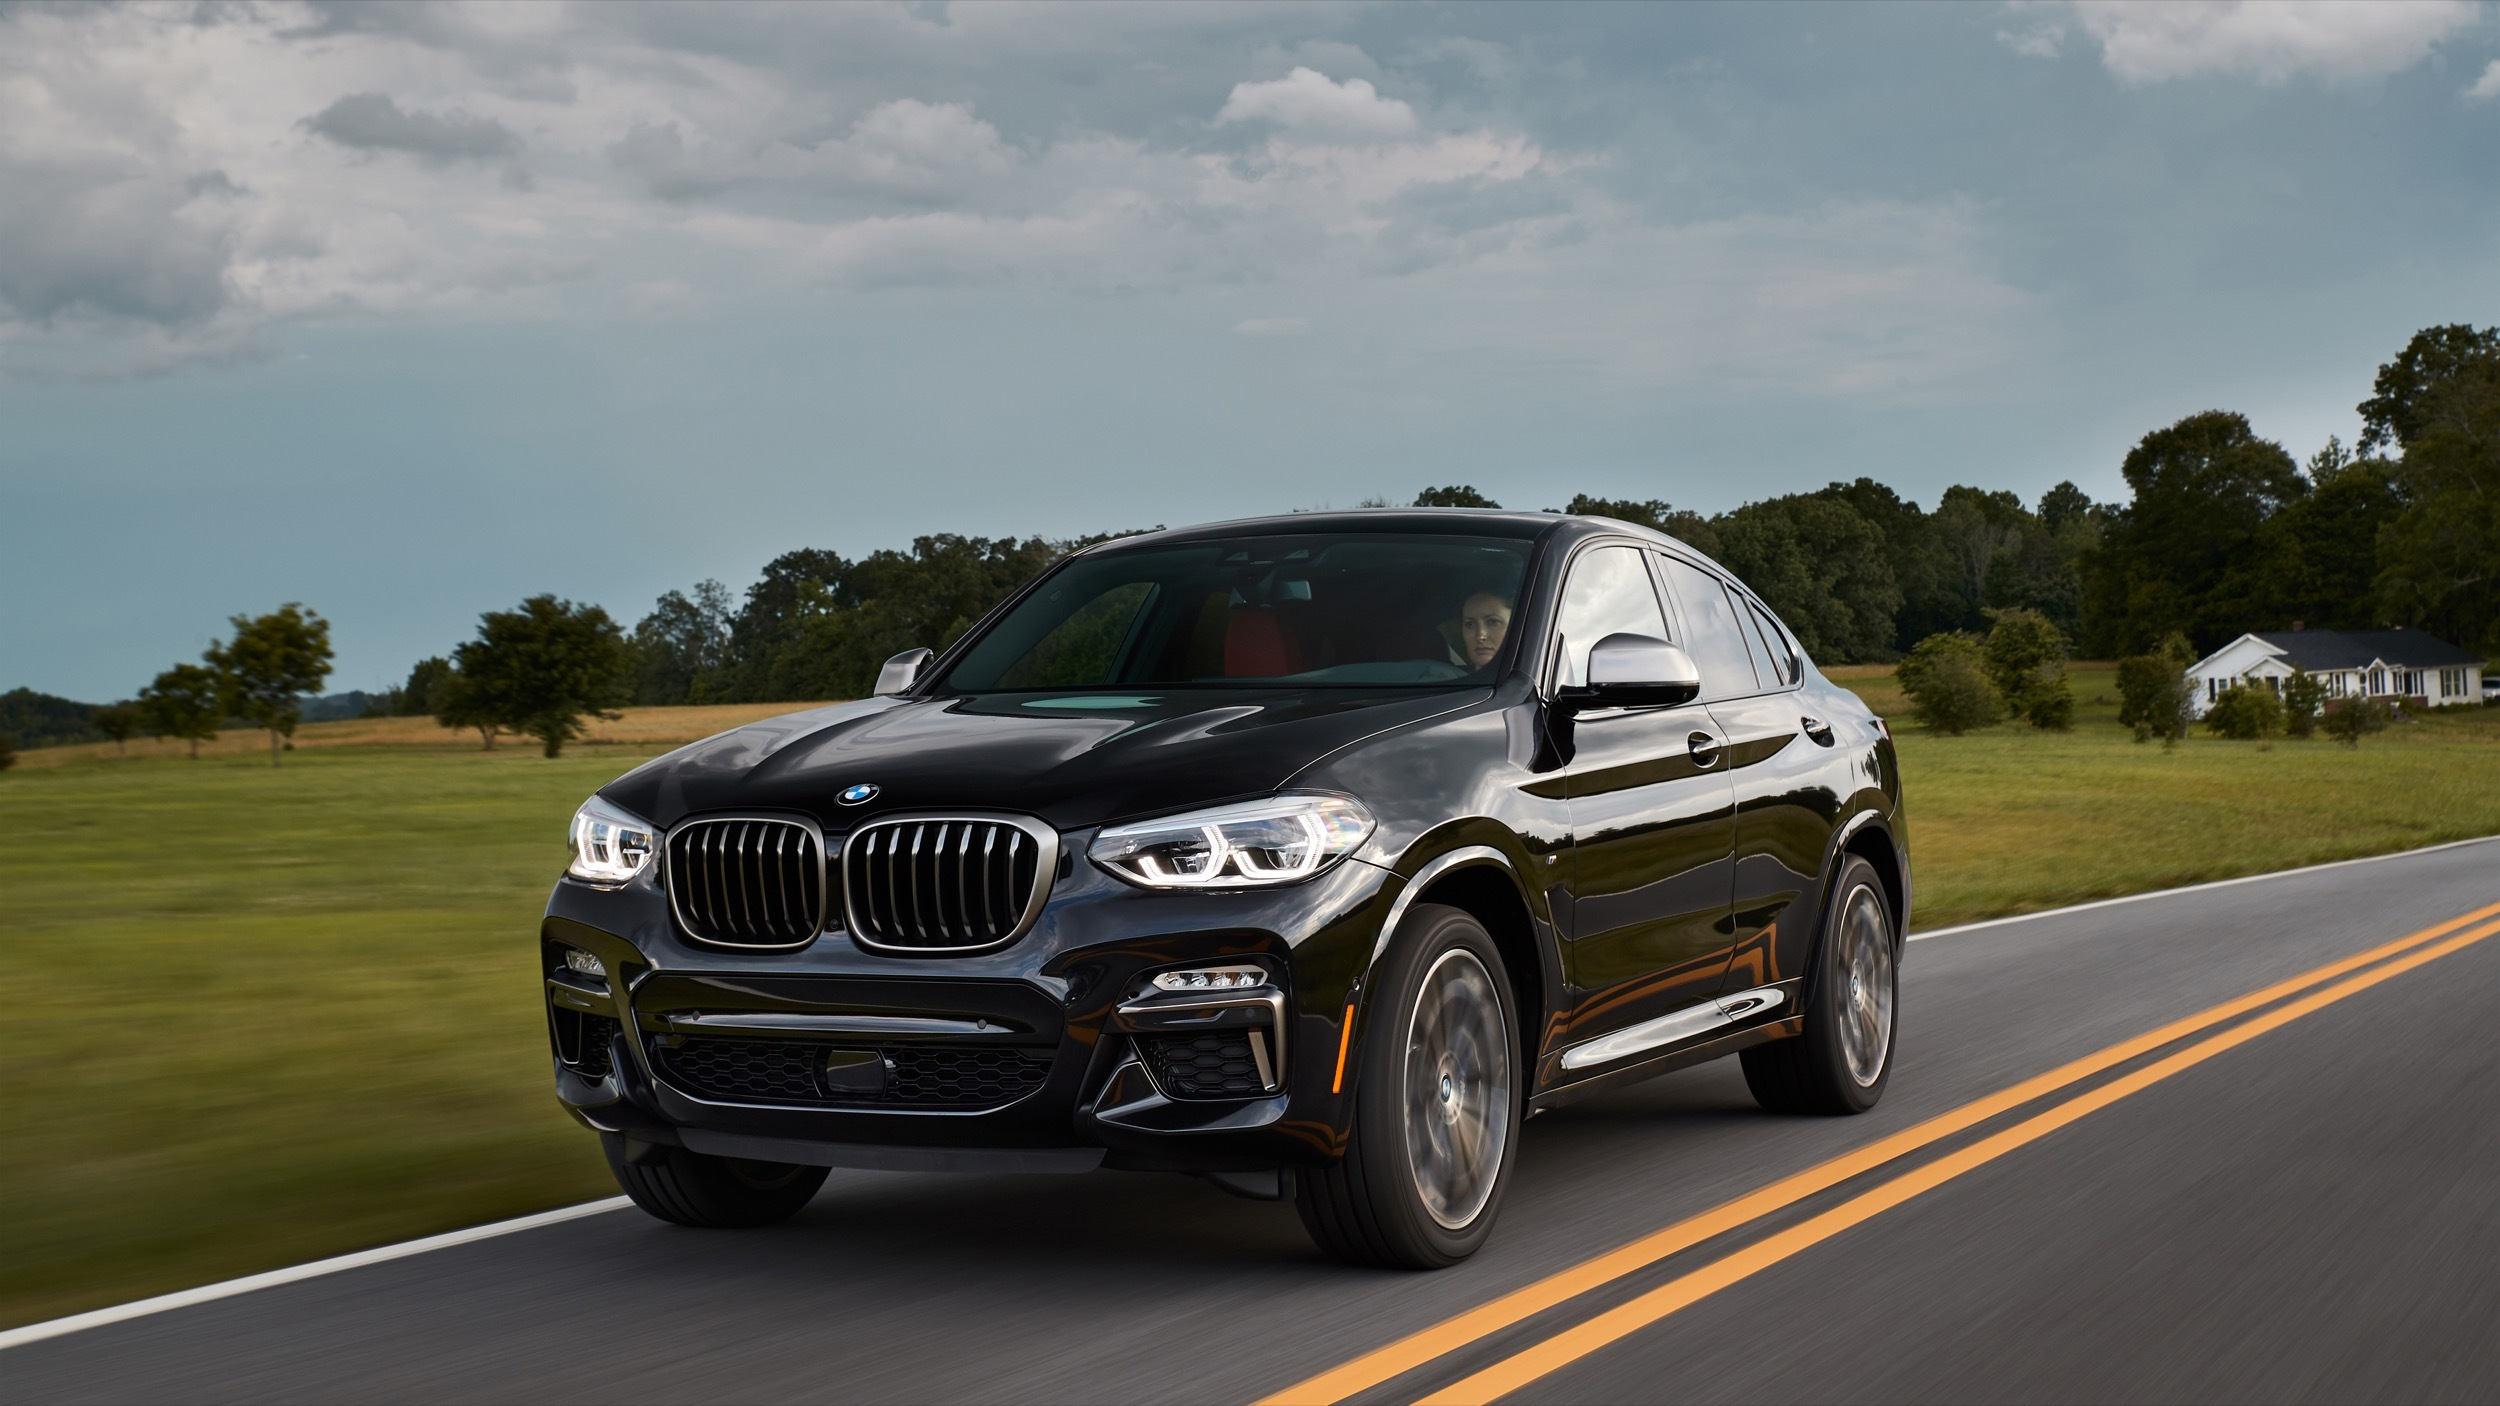 2019 Bmw X4 Review Sacrificing Practicality For Style